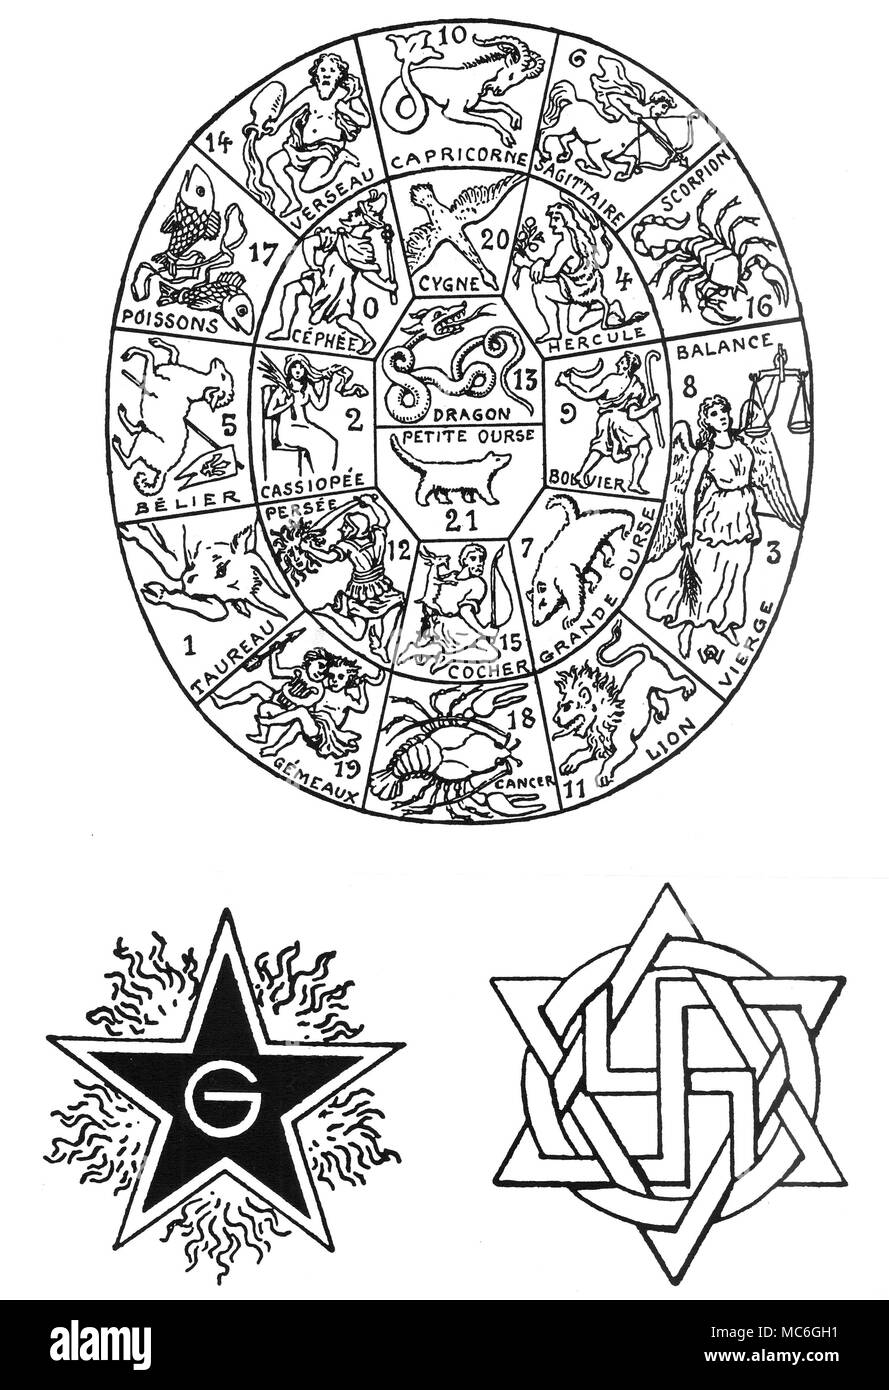 SYMBOLS - TAROT - CONSTELLATIONS - PENTAGRAM - SWASTIKA Diagram